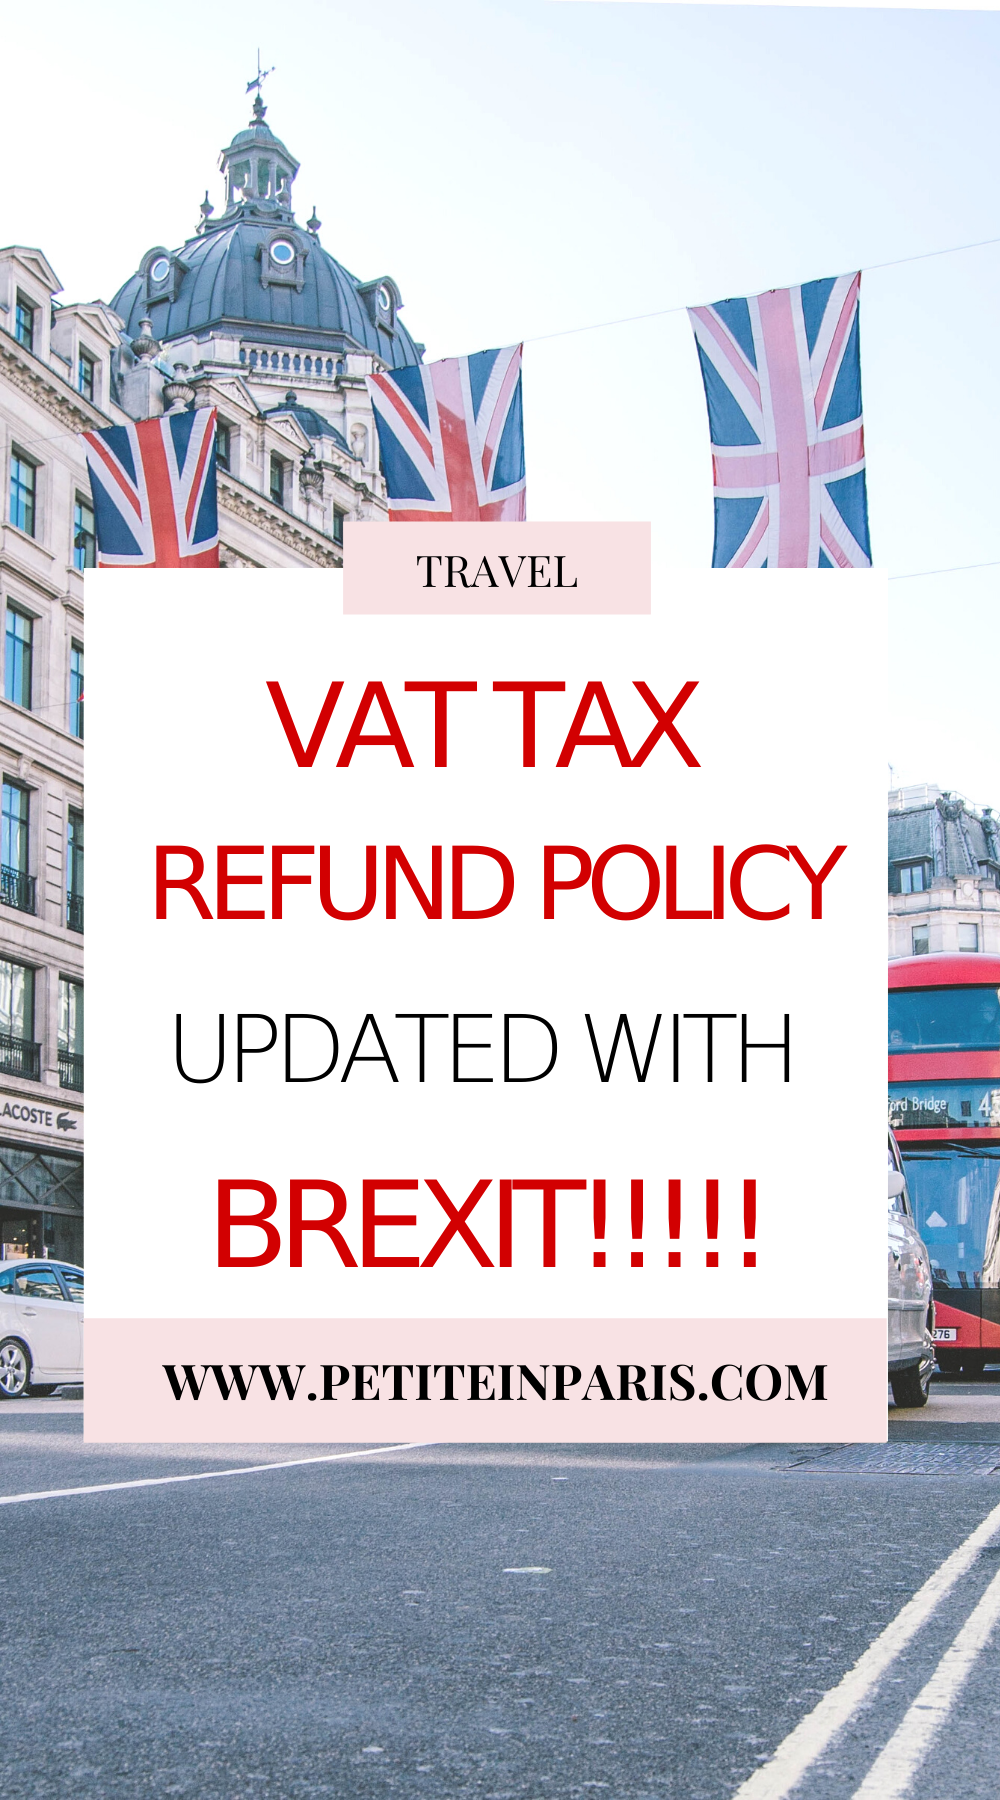 NEW Vat tax refund policy in London